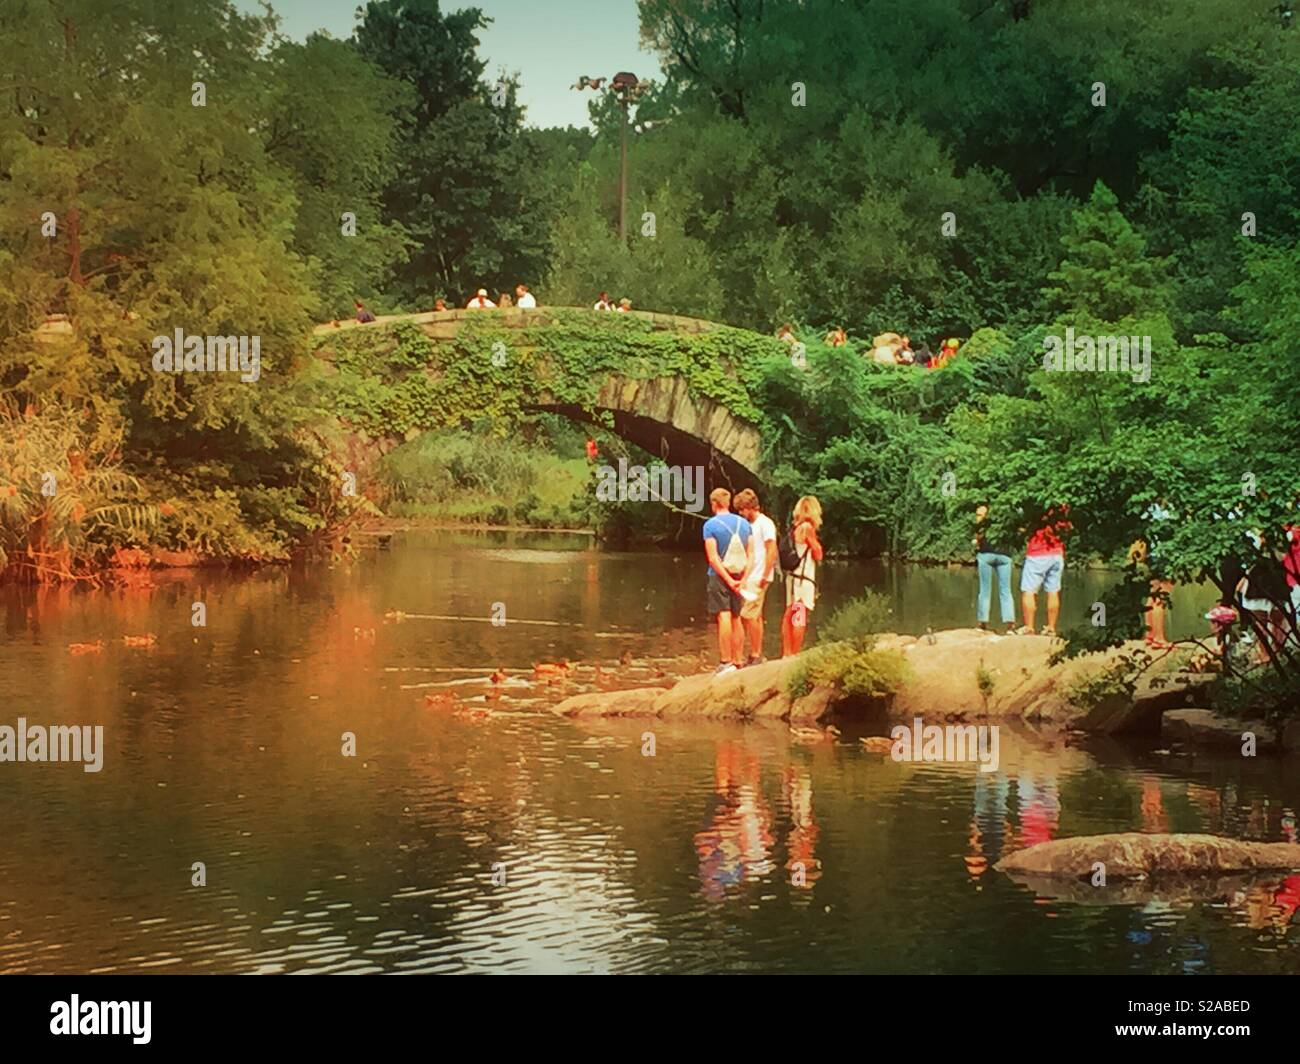 Tourists gather at the pond in front of Gapstow Bridge, Central Park, NYC, USA - Stock Image